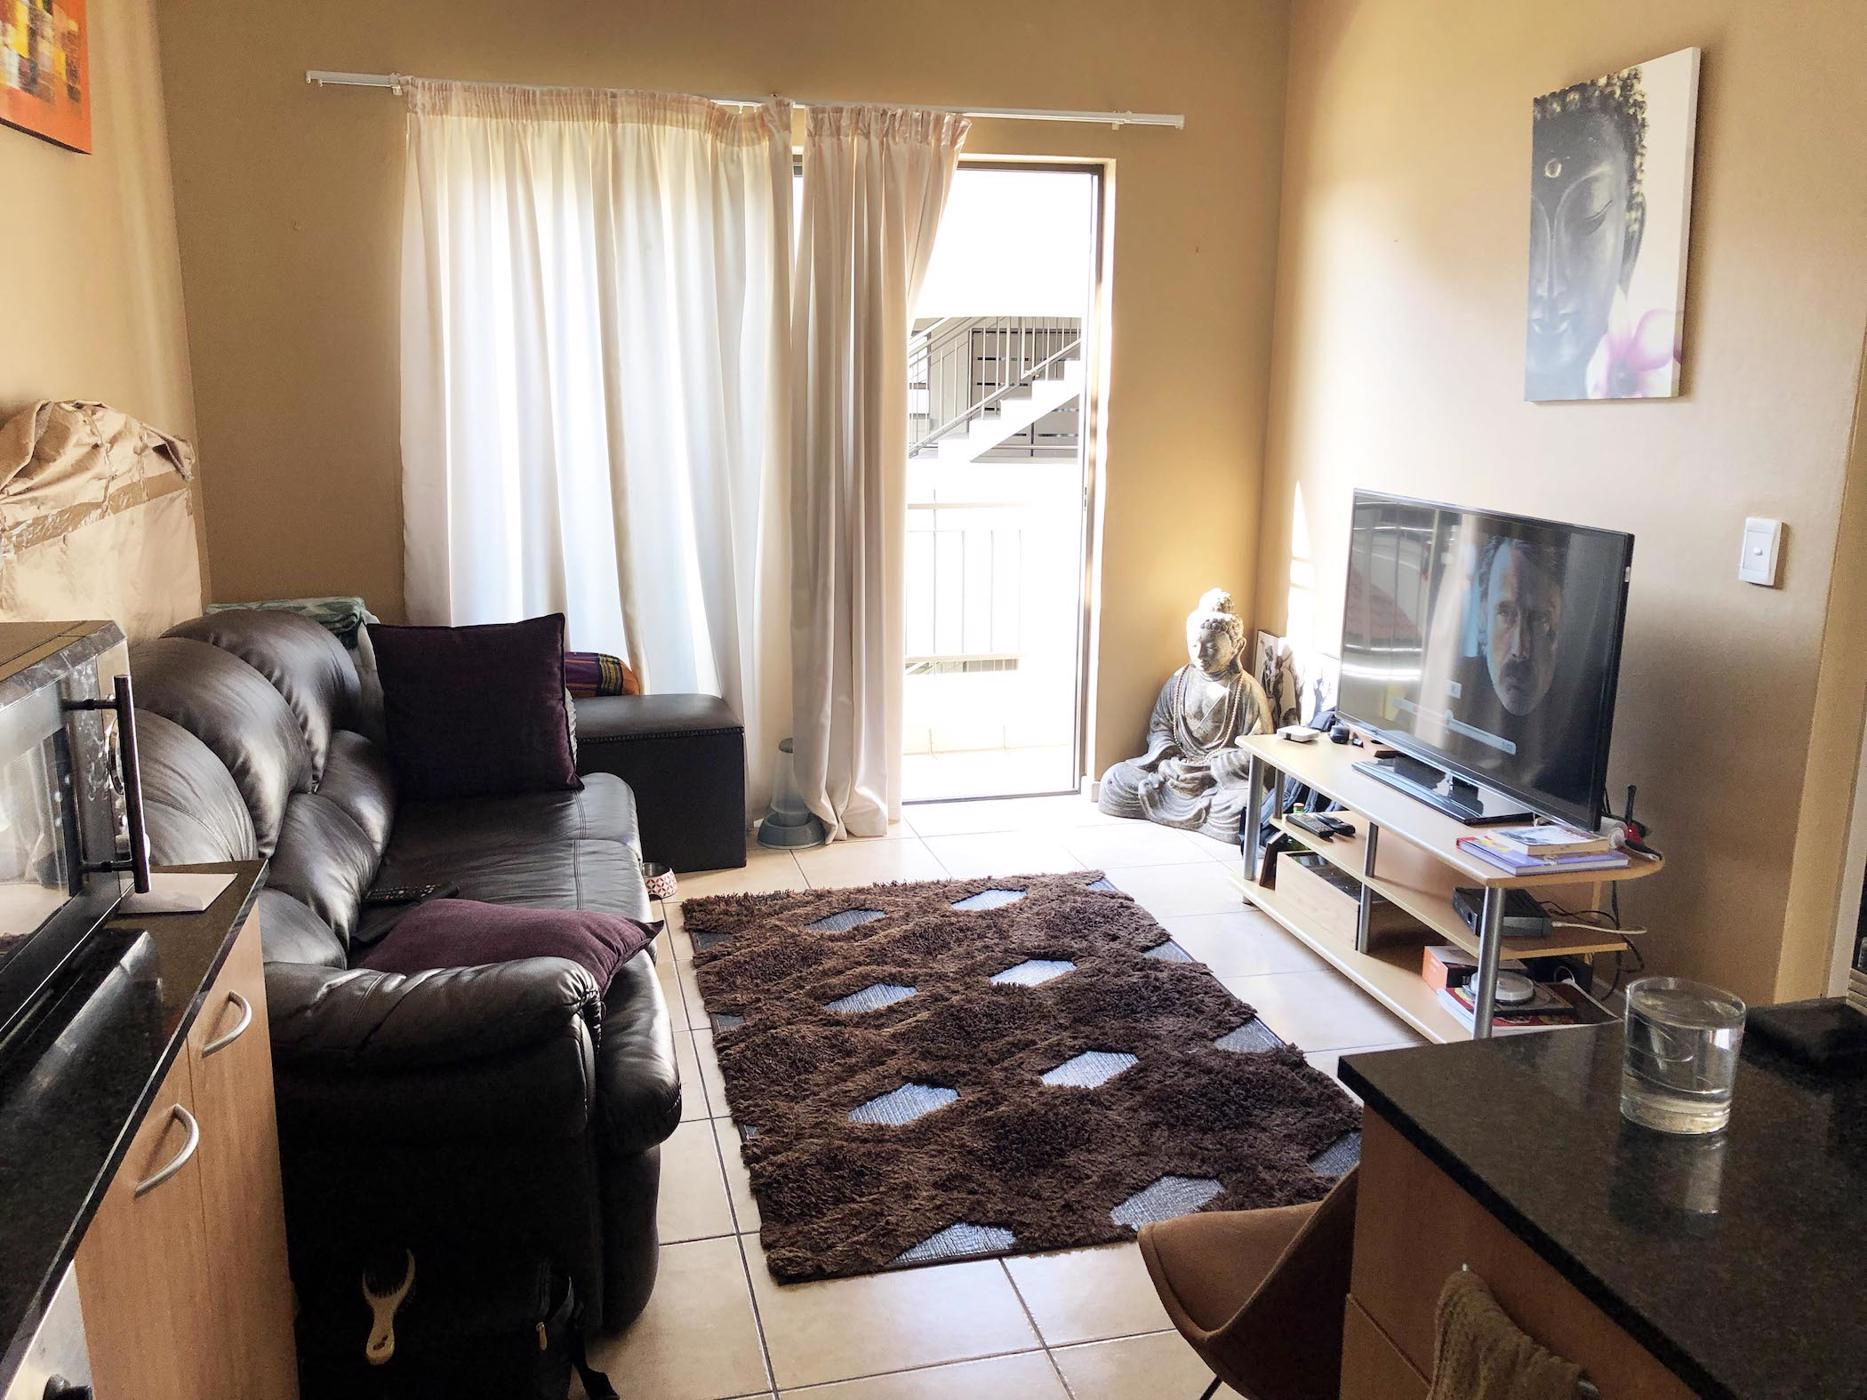 https://listing.pamgolding.co.za/images/properties/201901/1258773/H/1258773_H_5.jpg